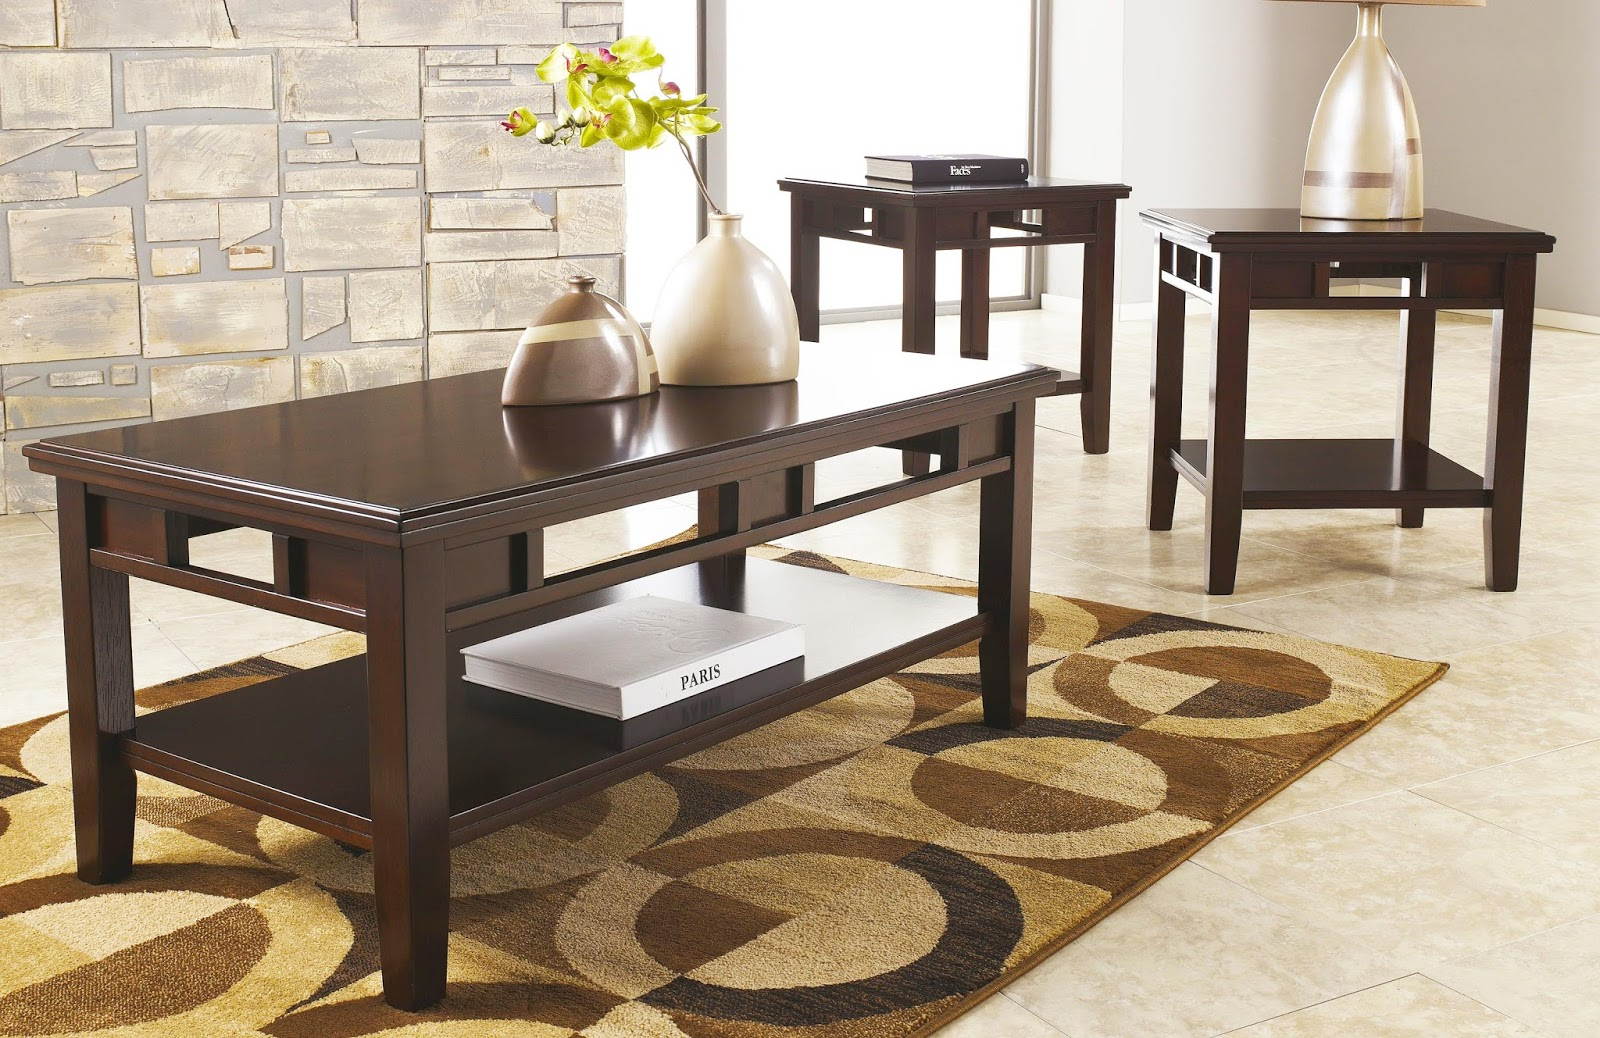 Table Set For Living Room How To Set Living Room Coffee Tables Properly Part2 Roy Home